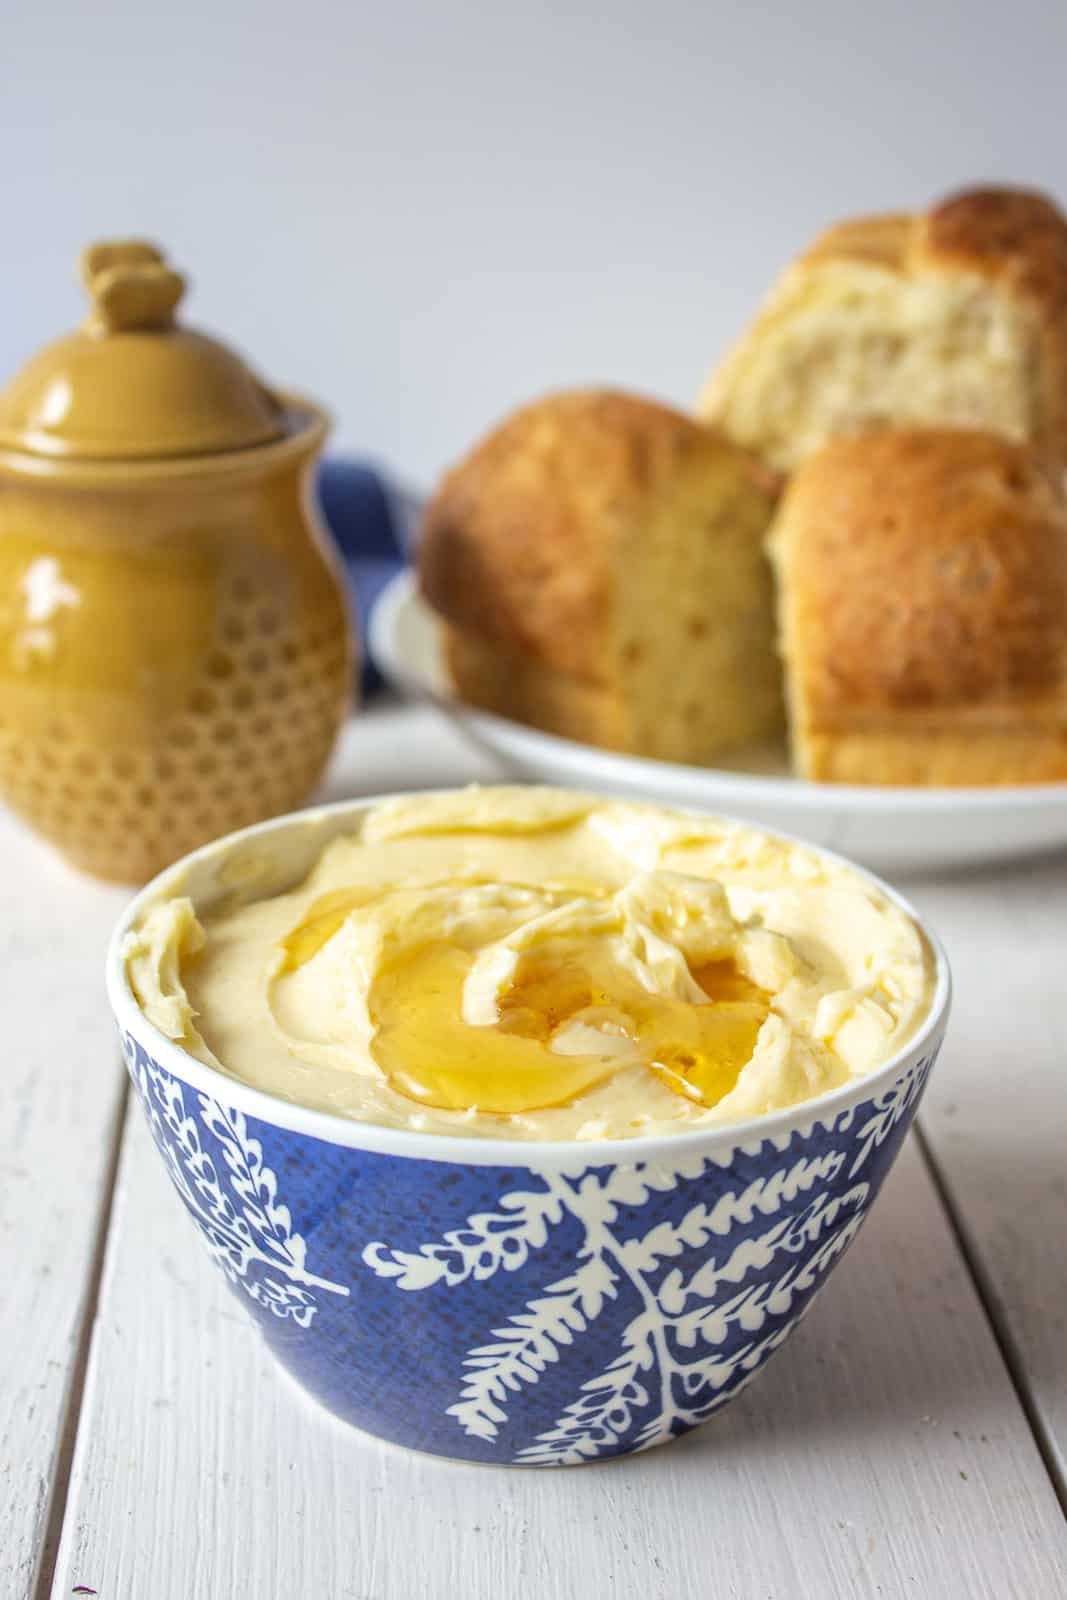 A small blue and white bowl filled with whipped butter and topped with honey.